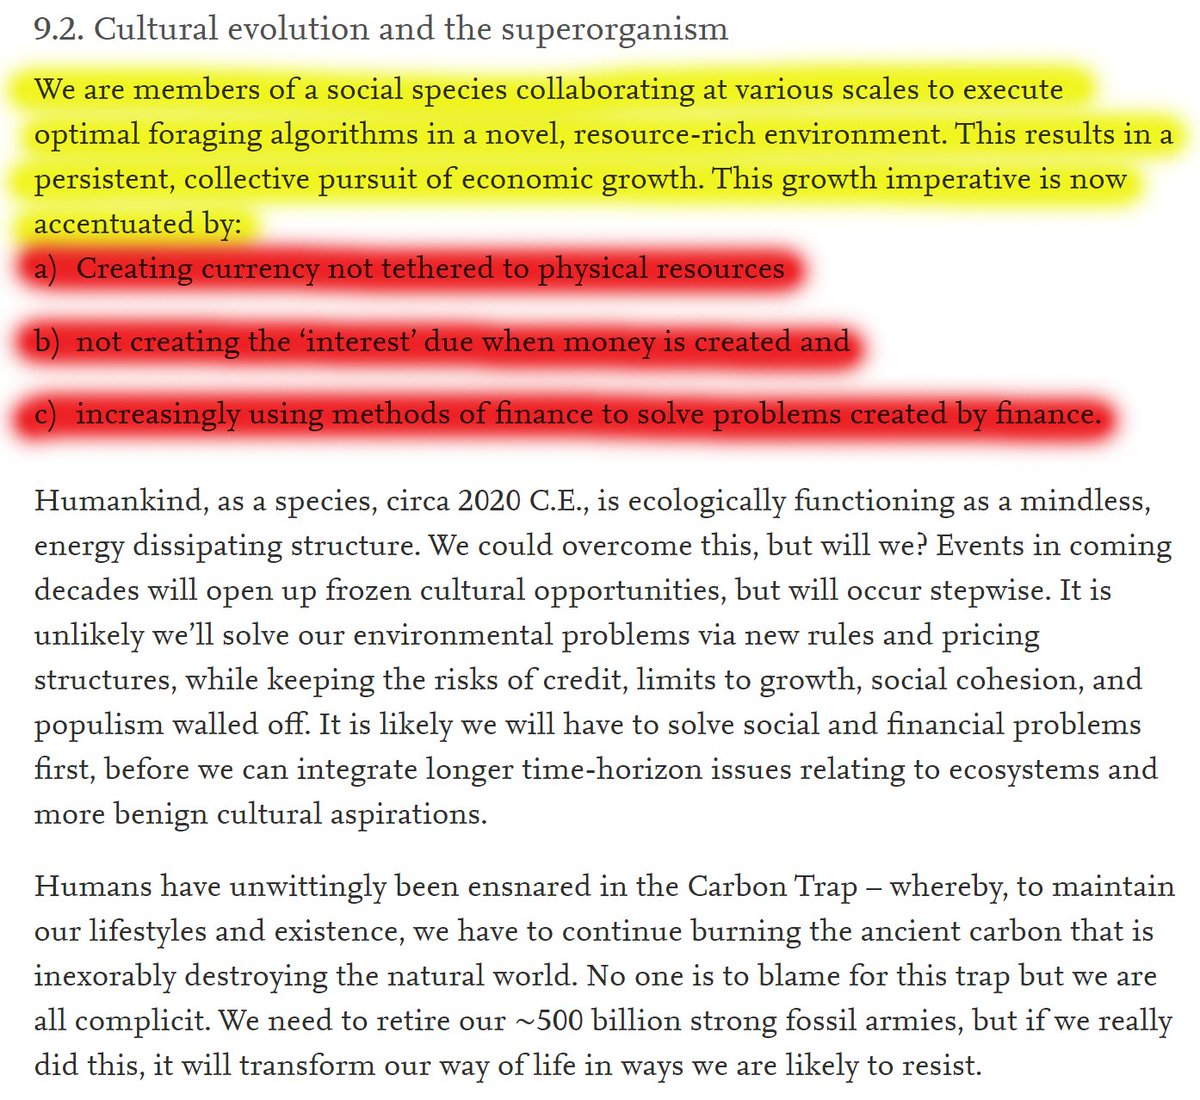 56/60 9.2. Cultural evolution and the superorganismGrowth imperative accentuated by:a) Creating currency not tethered to physical resourcesb) not creating the 'interest' due when money is createdc) increasingly using methods of finance to solve problems created by finance.